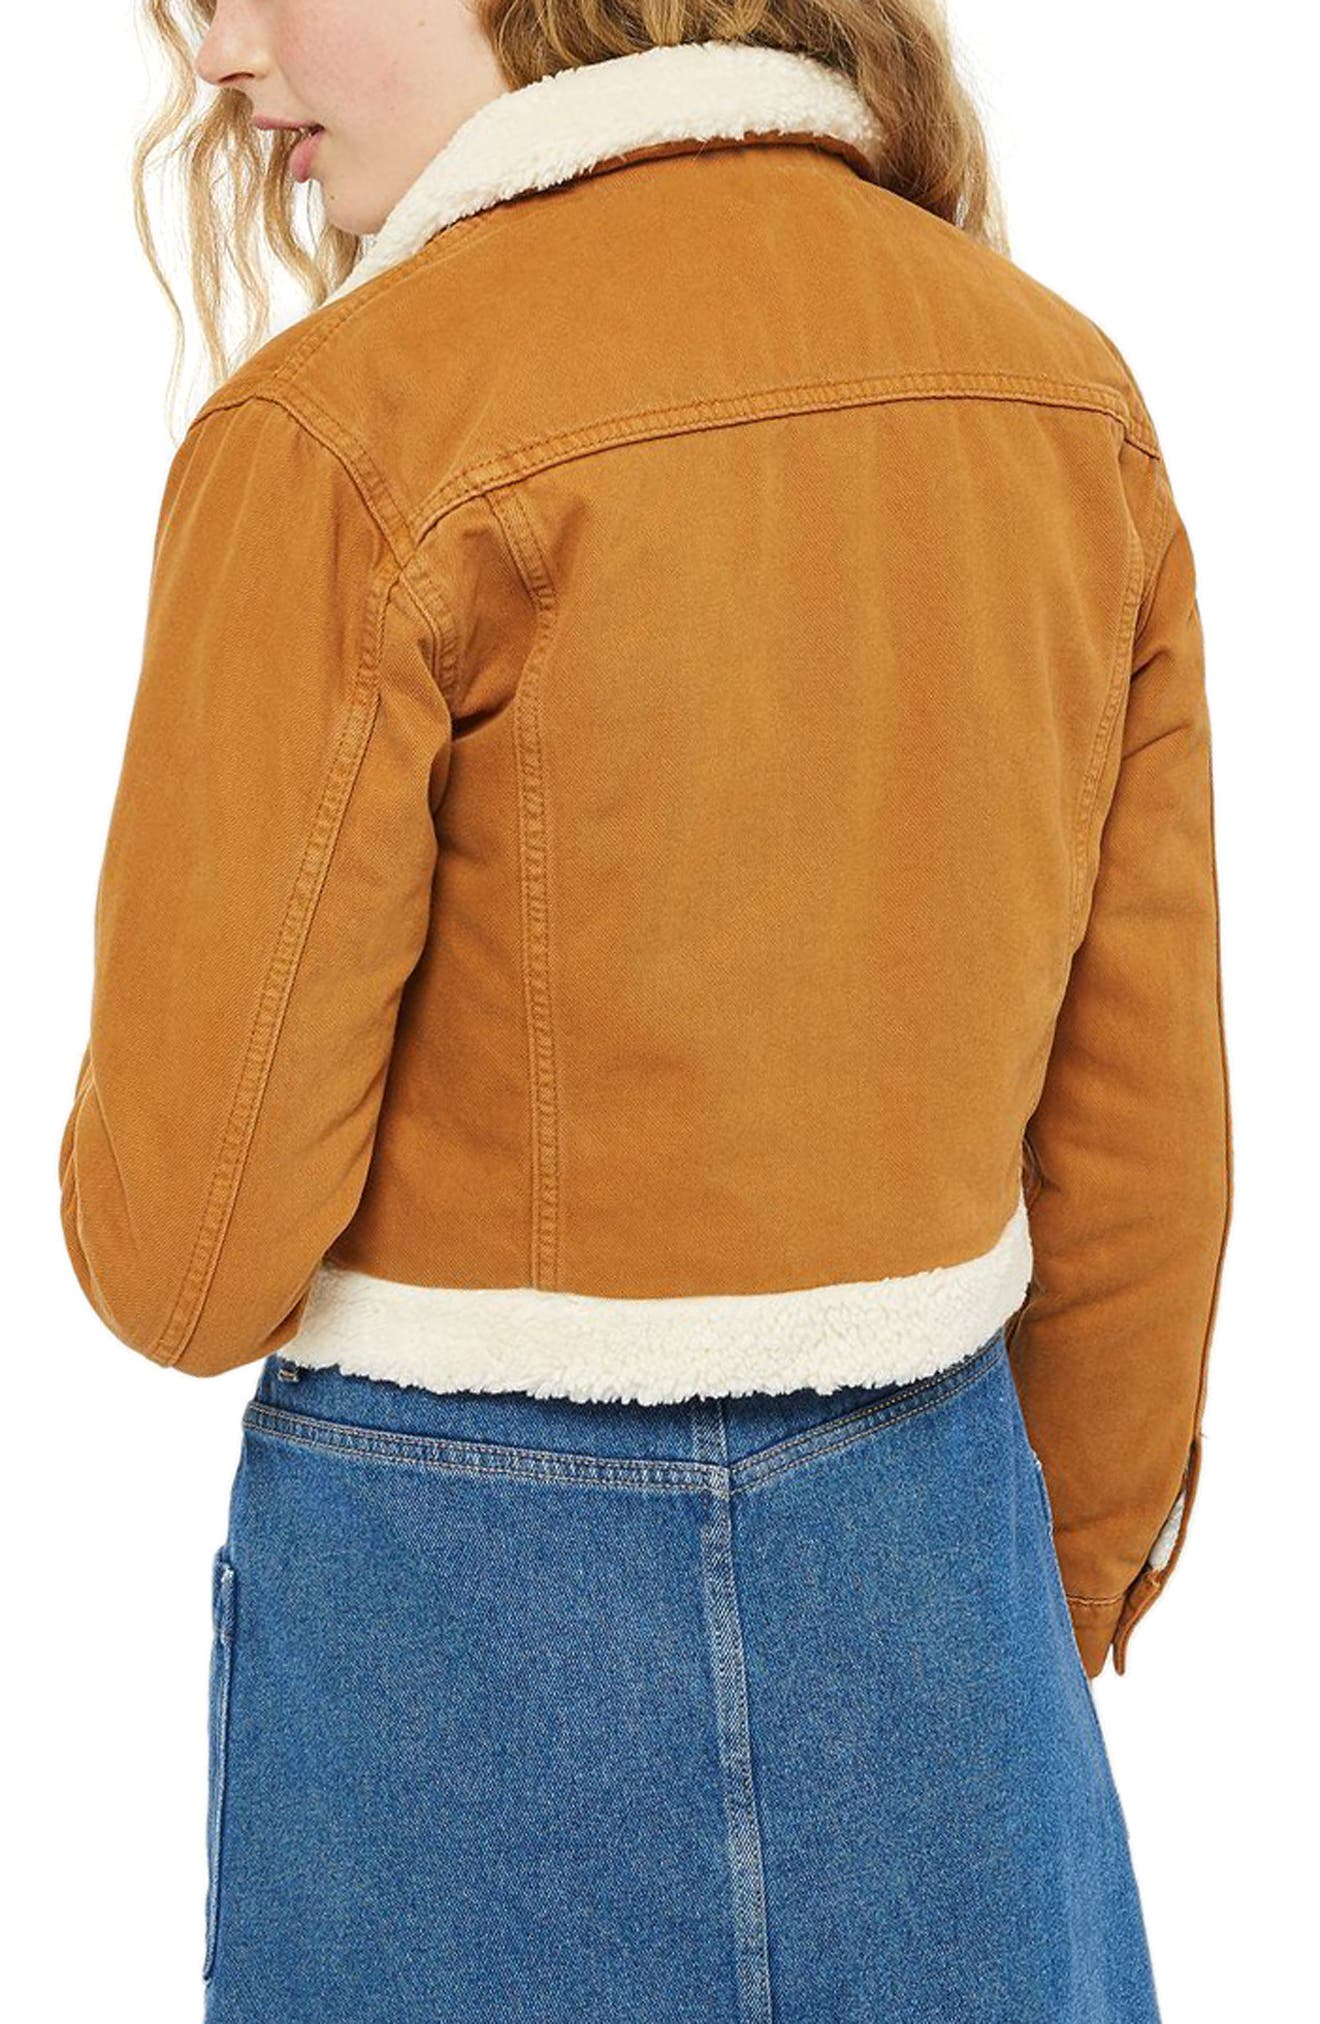 Borg Trim Crop Denim Jacket,                             Alternate thumbnail 3, color,                             Tan